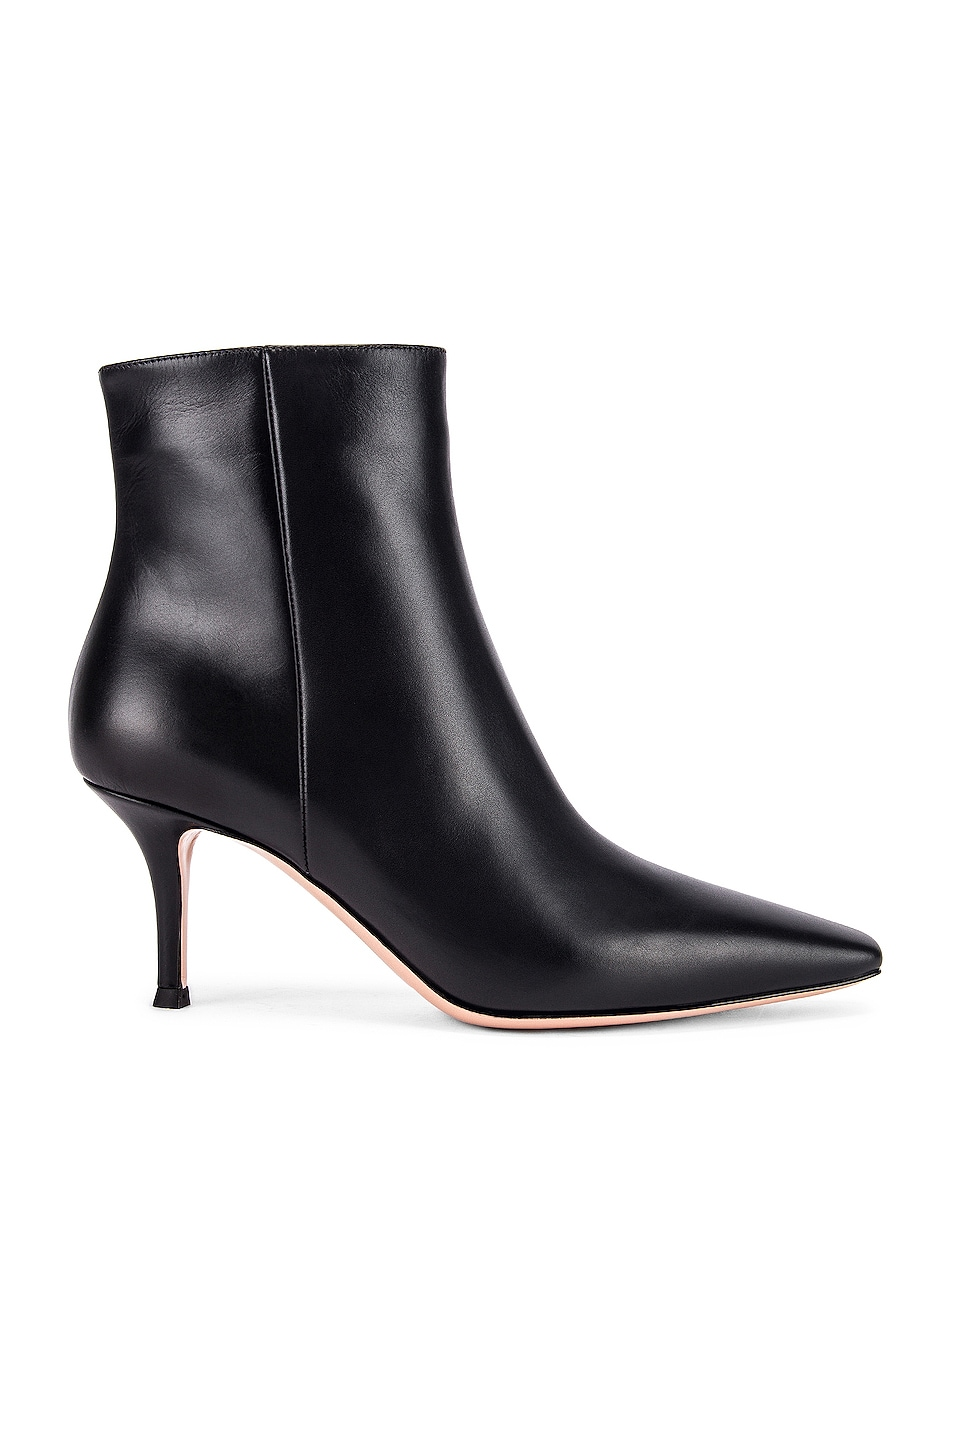 Image 1 of Gianvito Rossi Vitello Kitten Heel Booties in Black